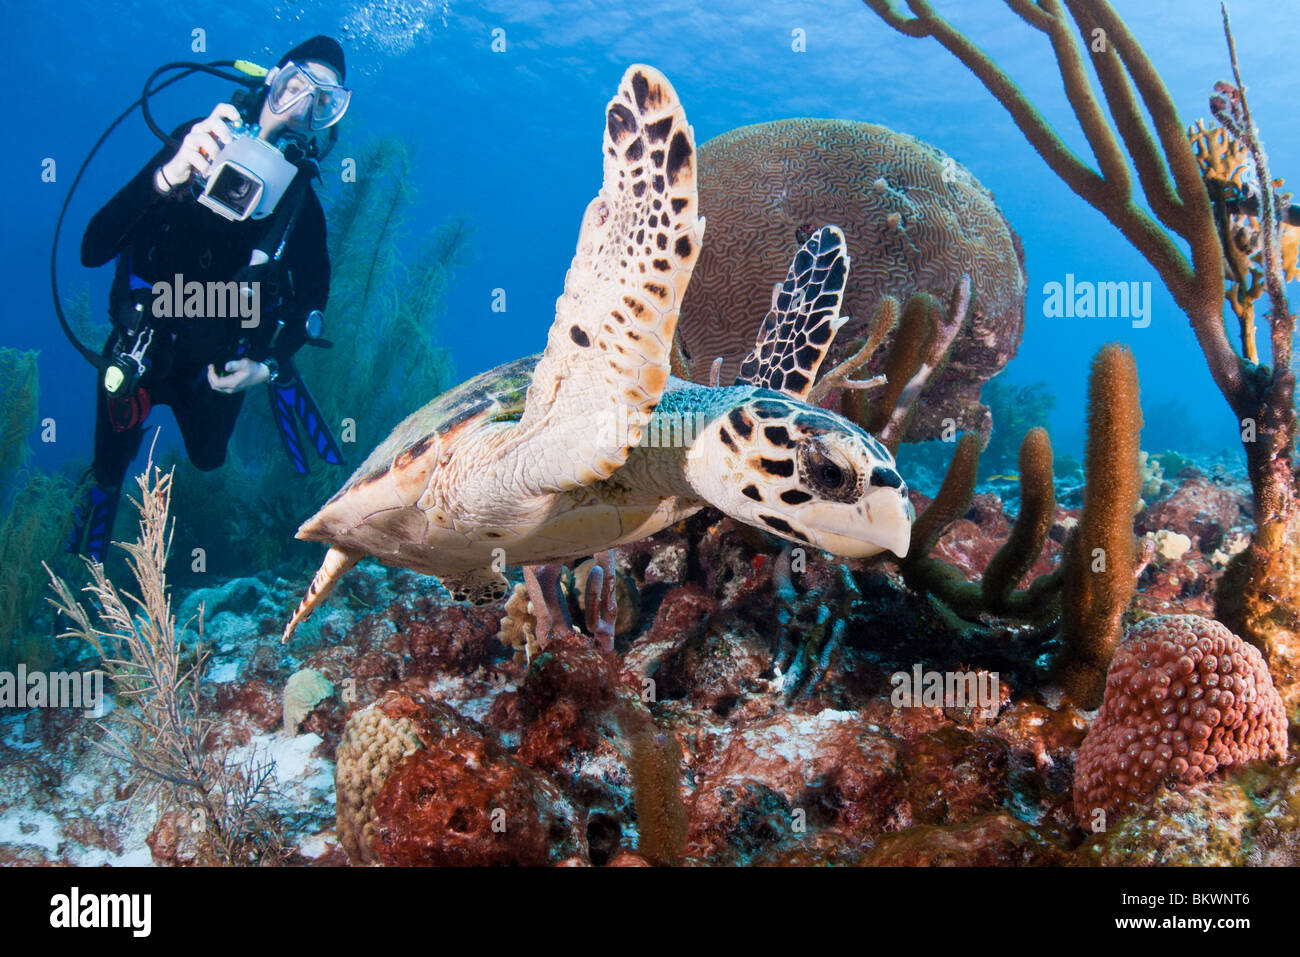 Atlantic Hawksbill Turtle swimming on a tropical coral reef while being photographed by scuba diver - Stock Image